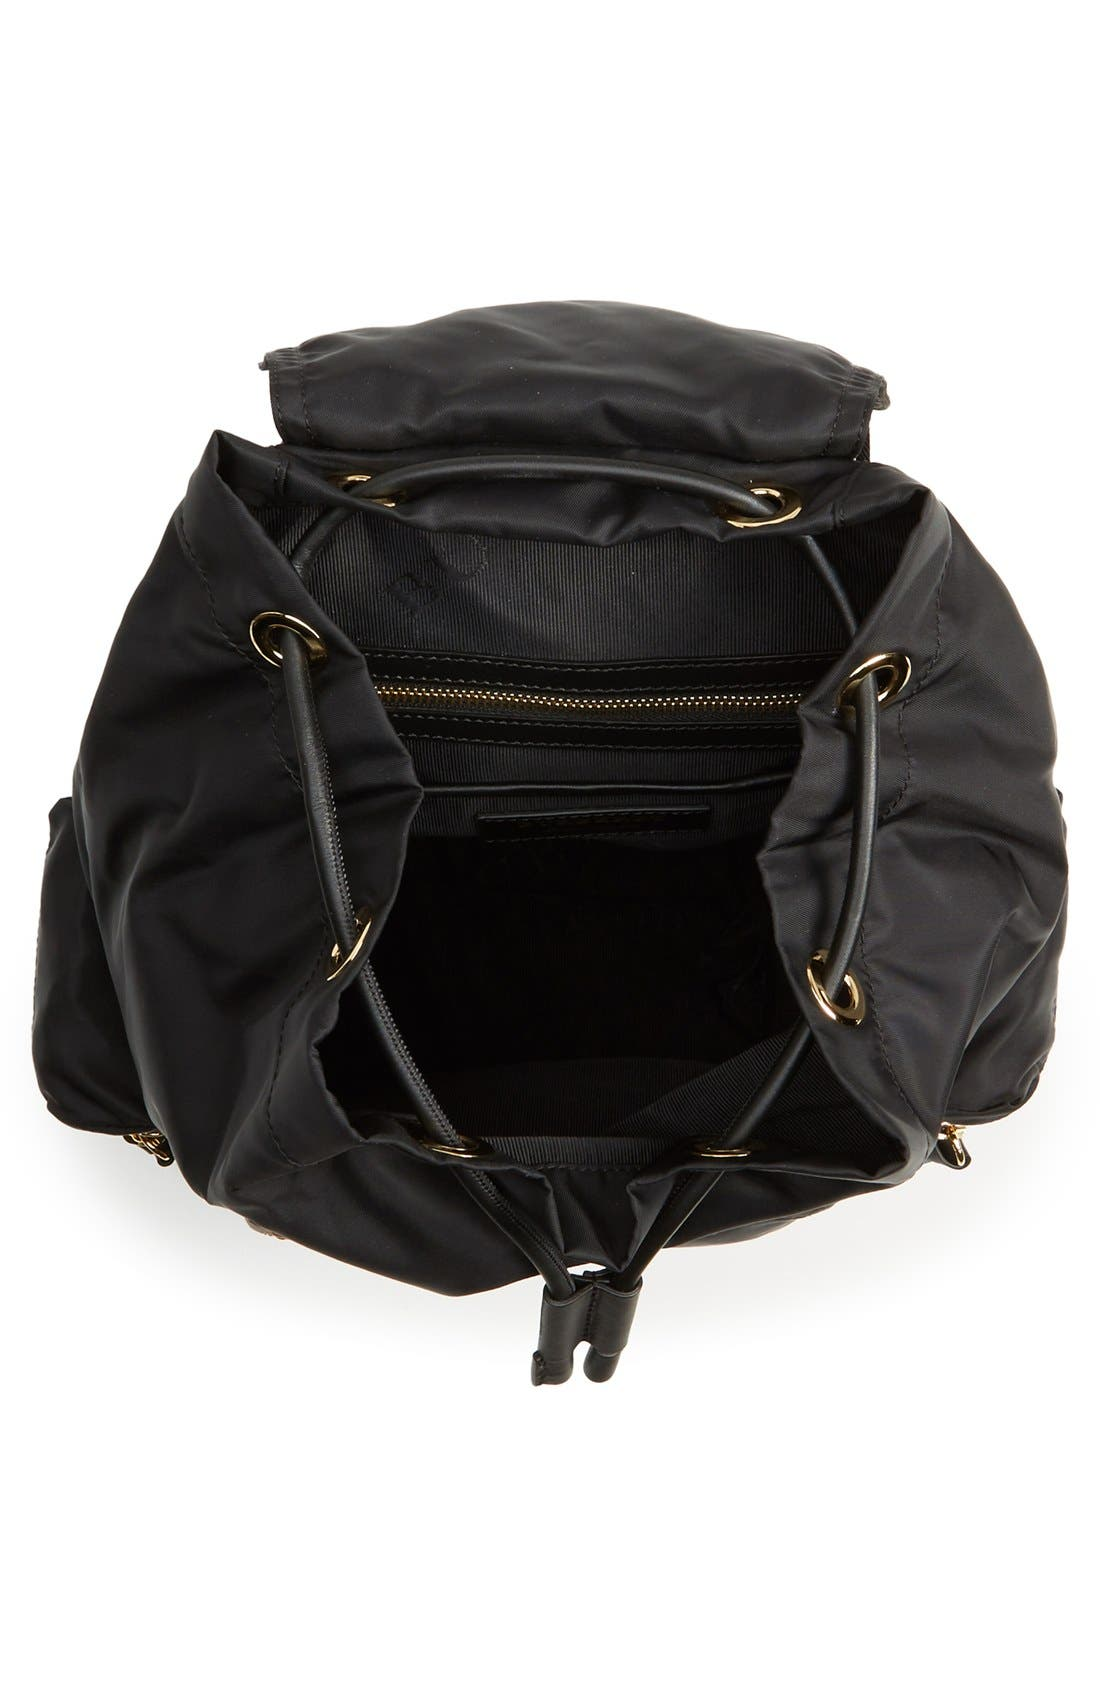 'Medium Runway Rucksack' Nylon Backpack,                             Alternate thumbnail 4, color,                             Black